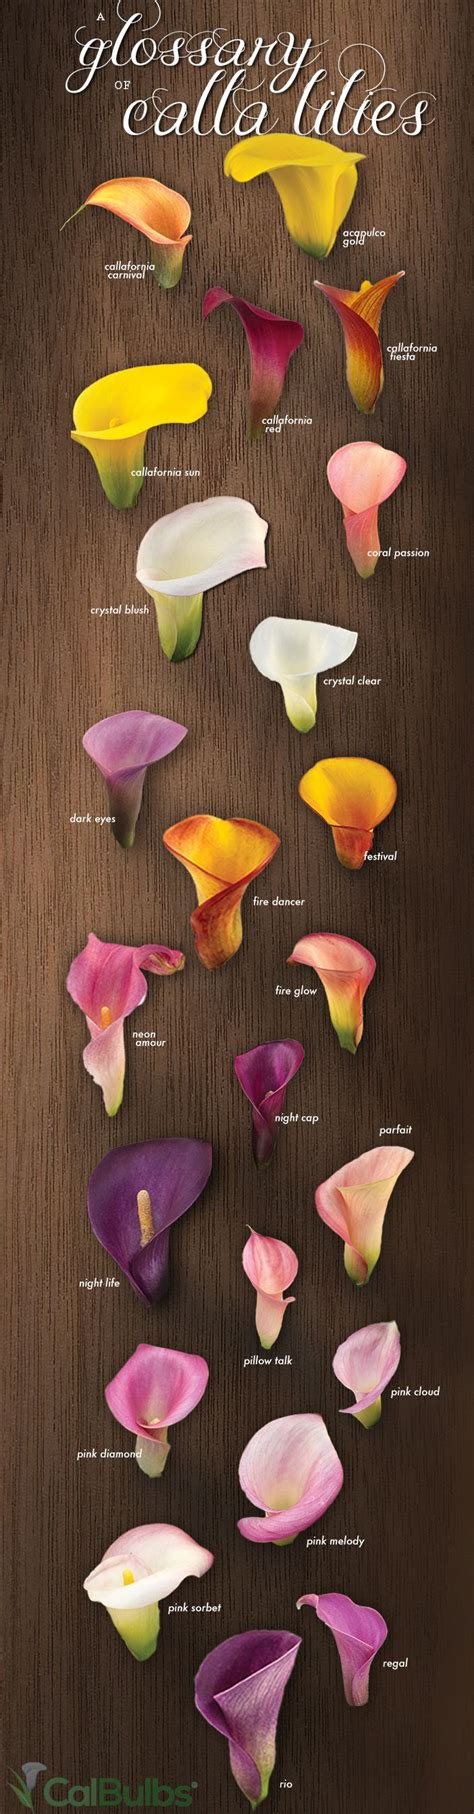 calla colors best 25 calla lilies ideas on calla lillies